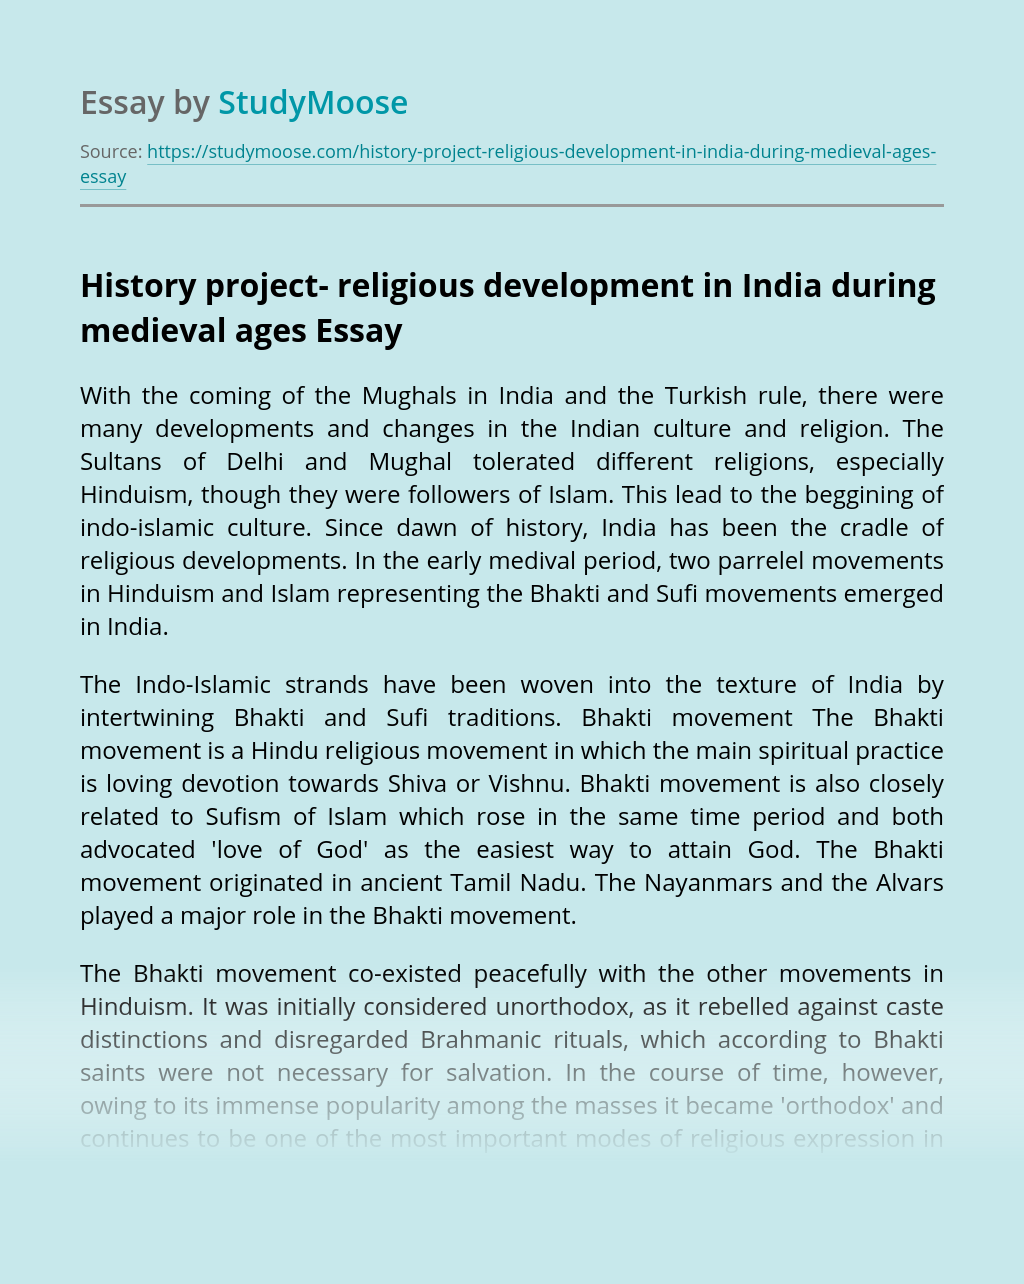 History project- religious development in India during medieval ages